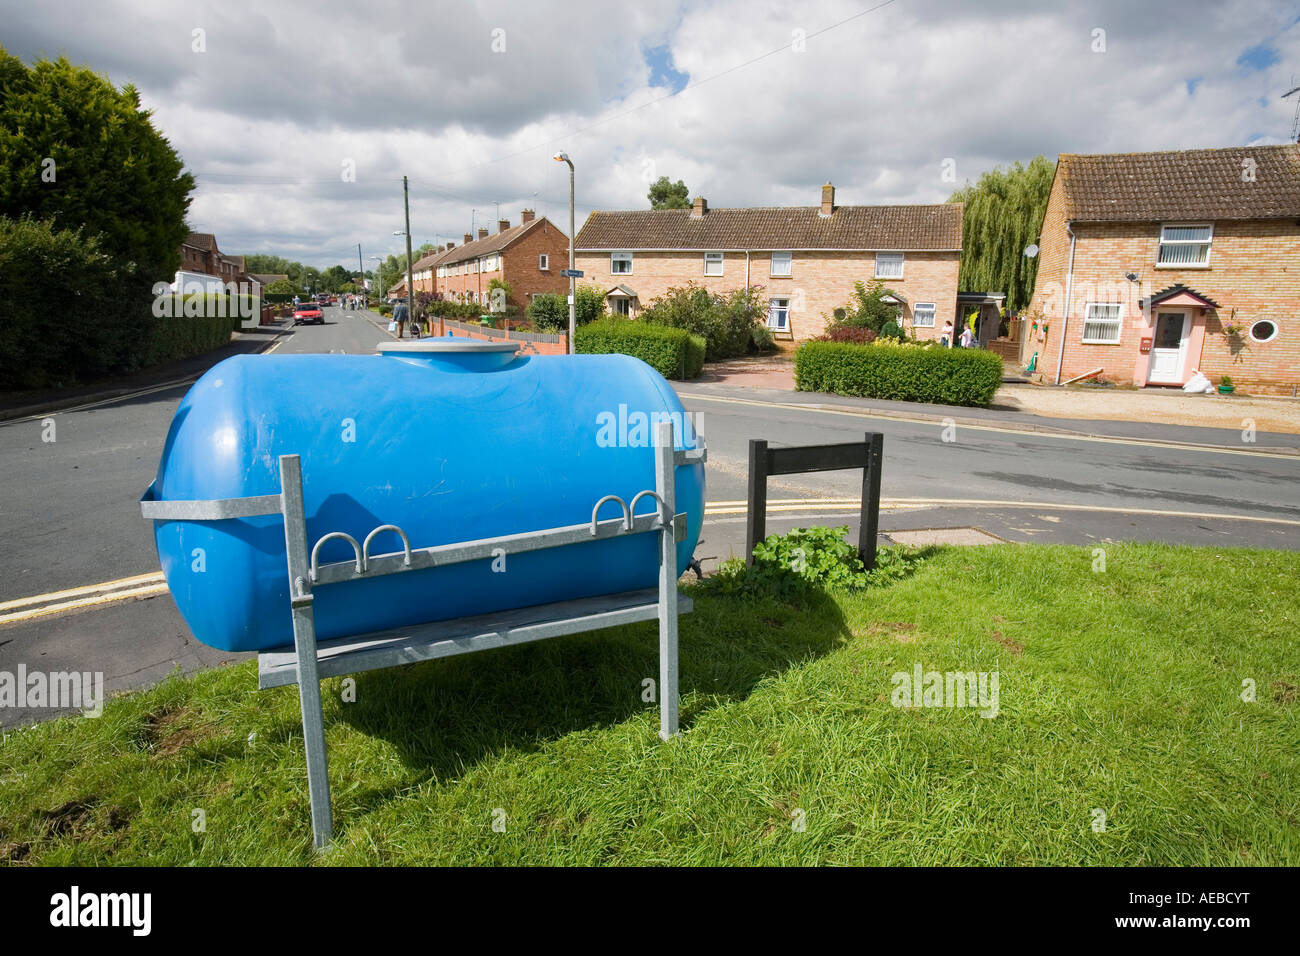 water bowsers preoviding drinking water during  the Tewkesbury floods - Stock Image